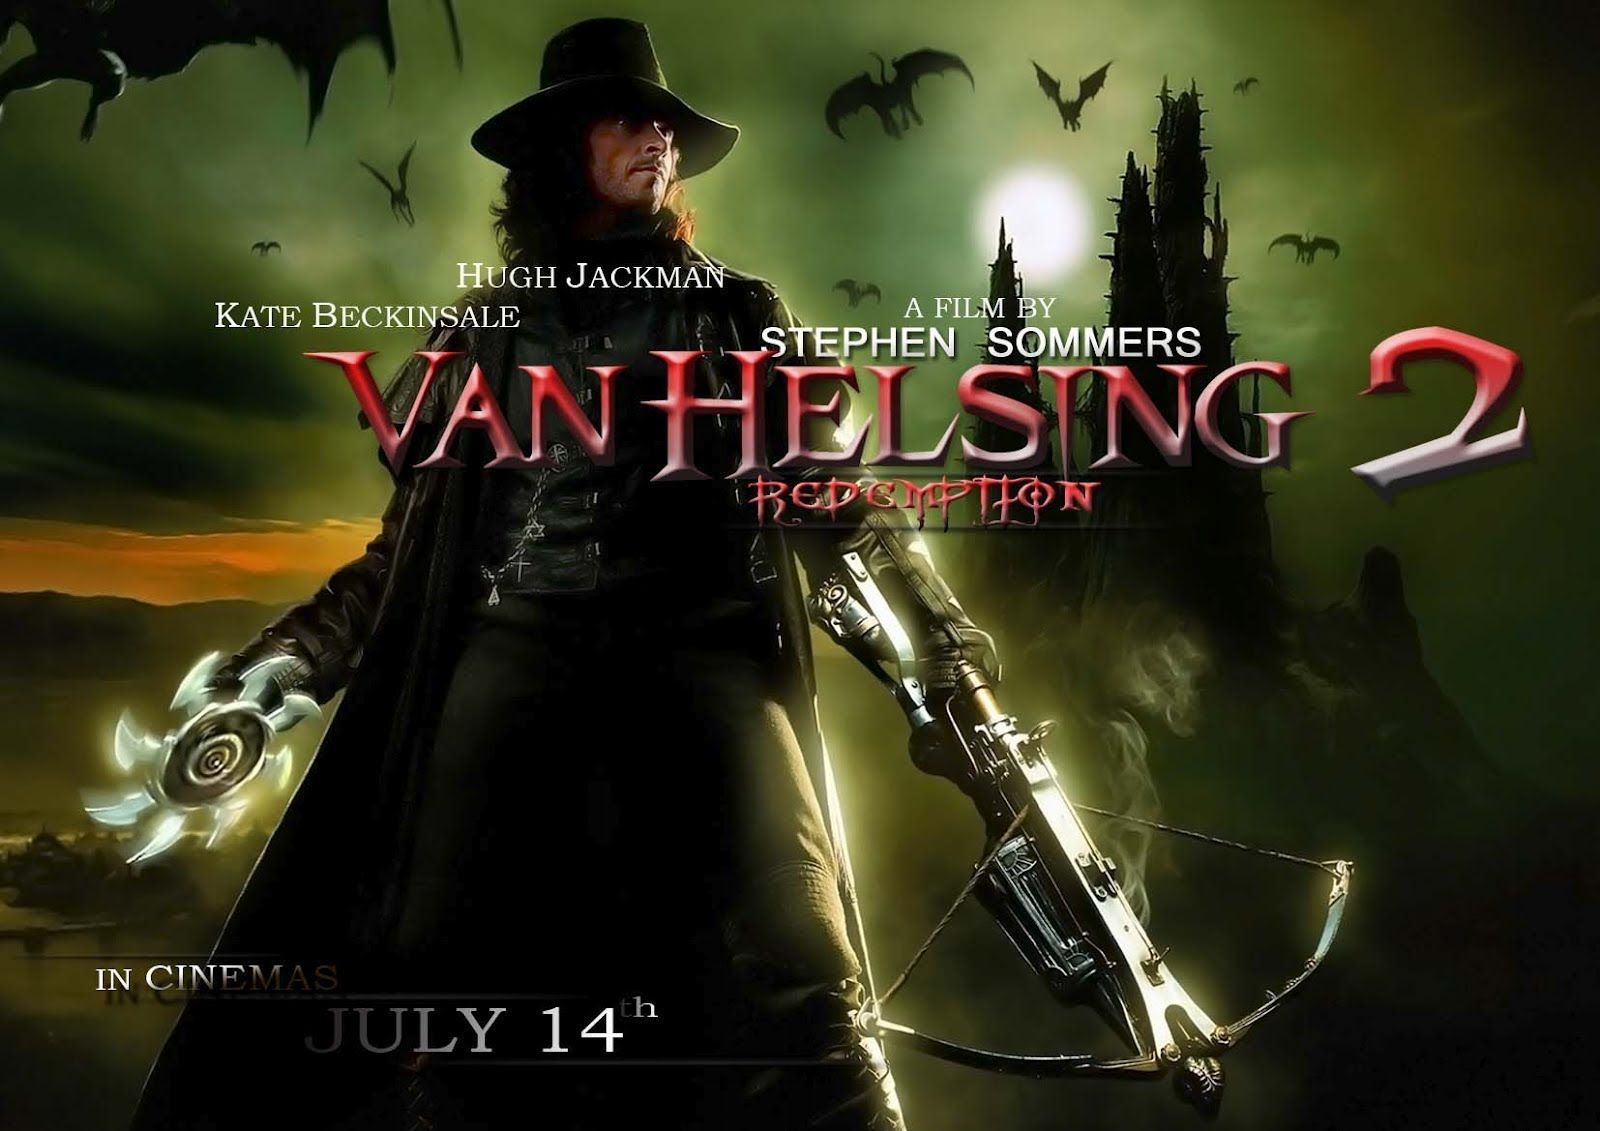 Download Solomon Kane 2009 YIFY Torrent for 720p